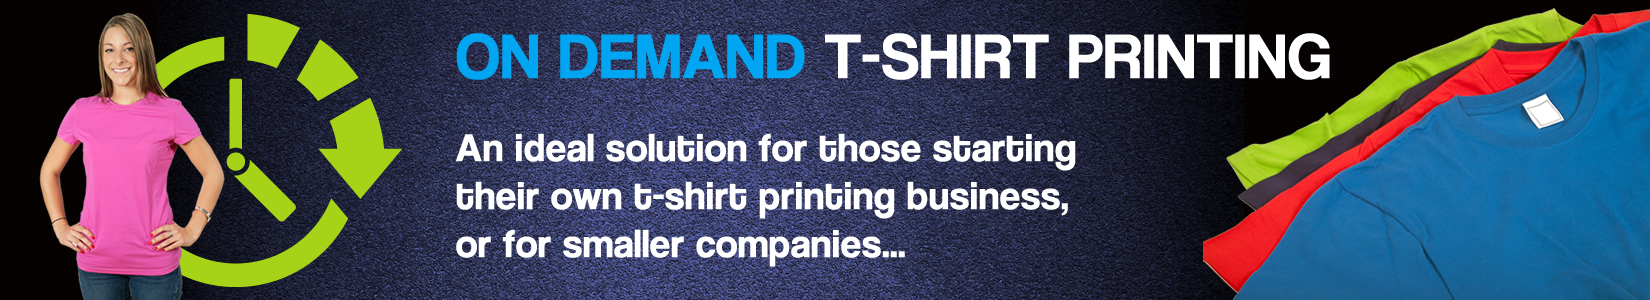 Splashlogo on demand t shirt printing for On demand t shirt printing